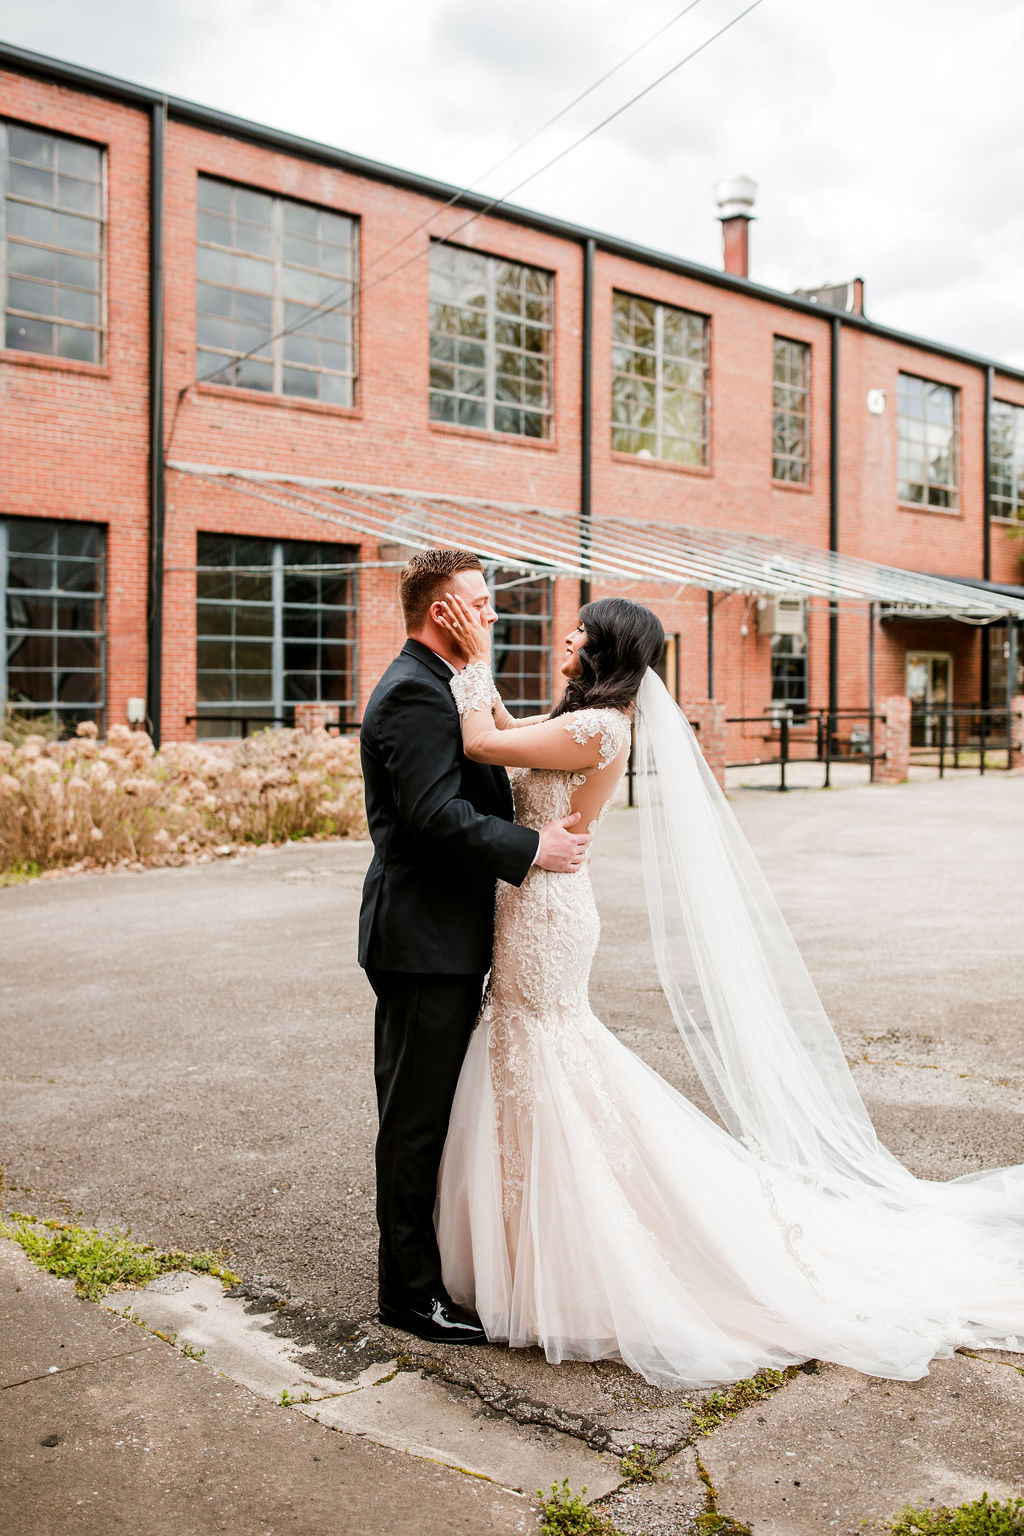 Wedding first look: Wedding at The Mill captured by John Myers Photography featured on Nashville Bride Guide